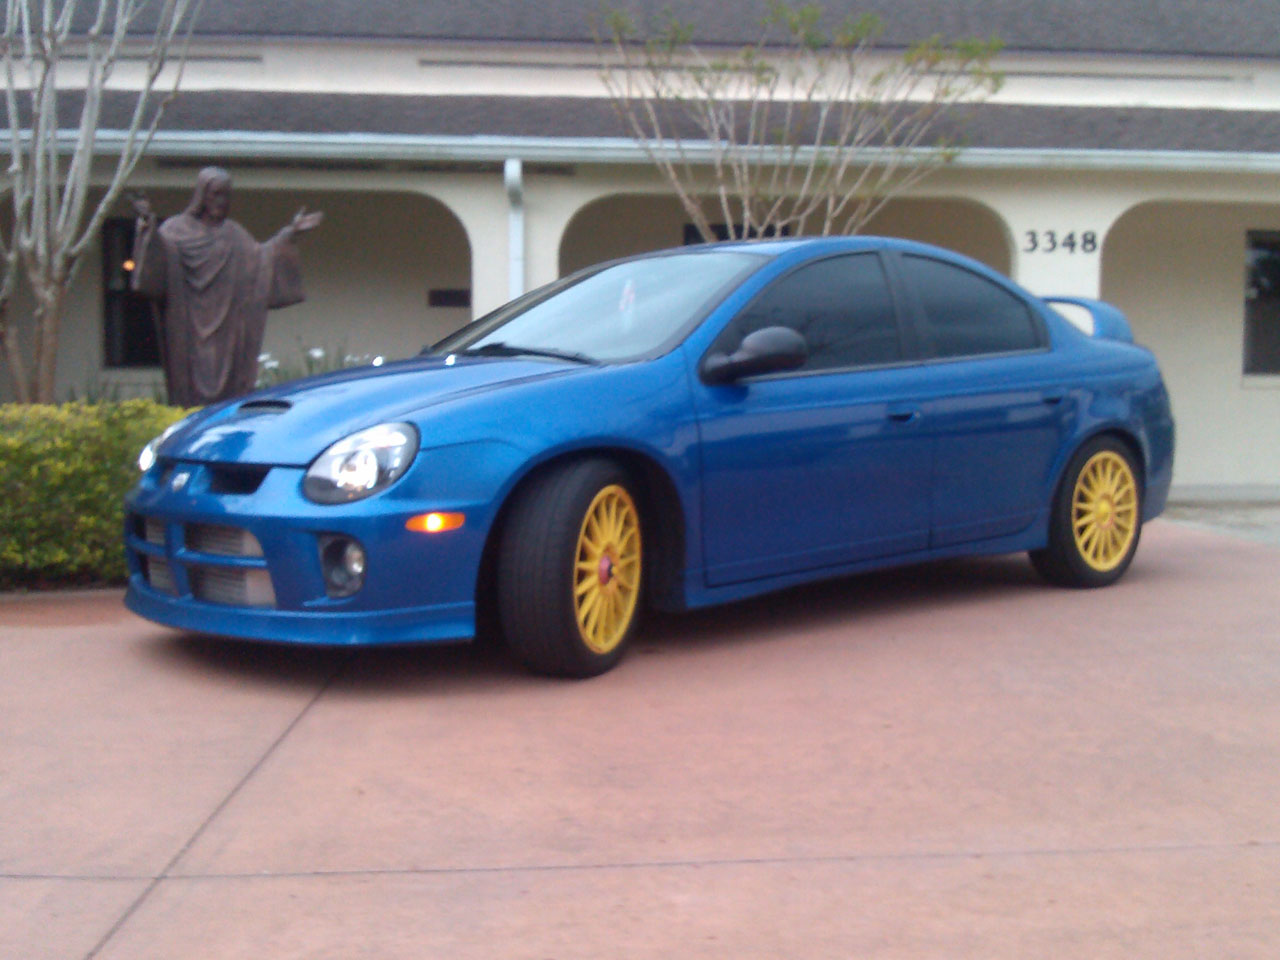 Electric Blue 2004 Dodge Neon SRT-4